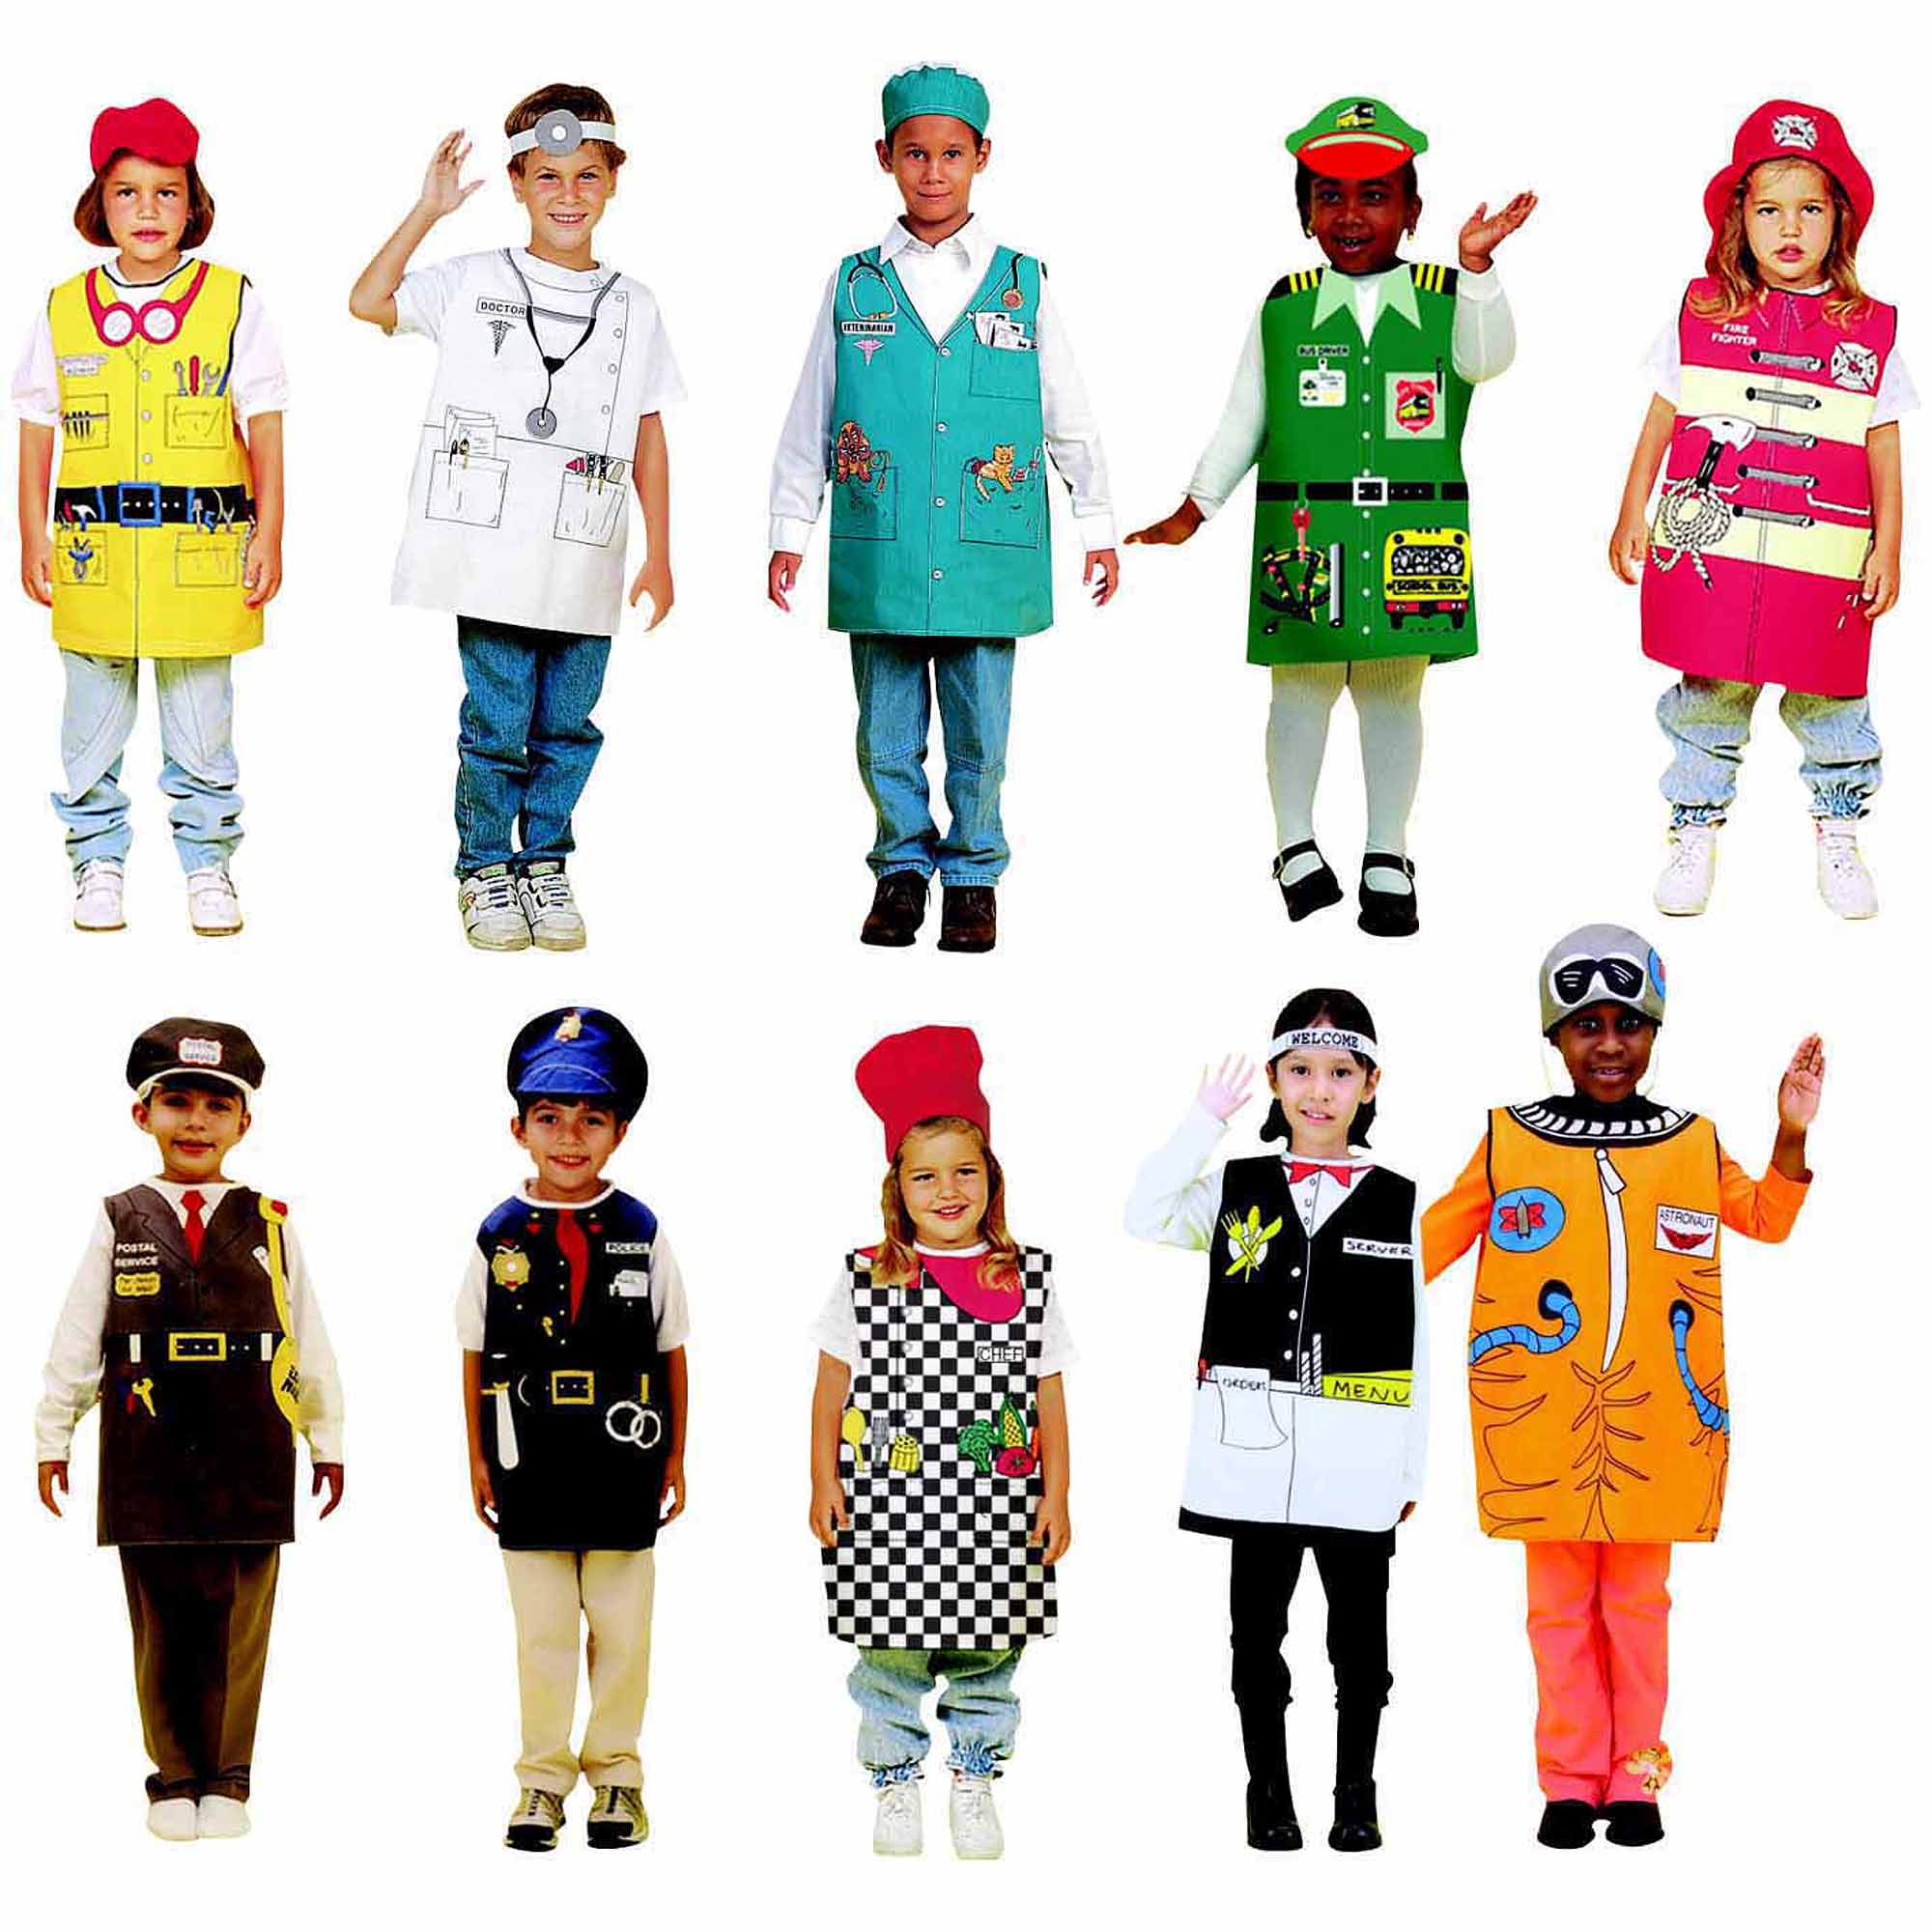 Childcraft Occupations Costumes with Hats for Children, Set of 10